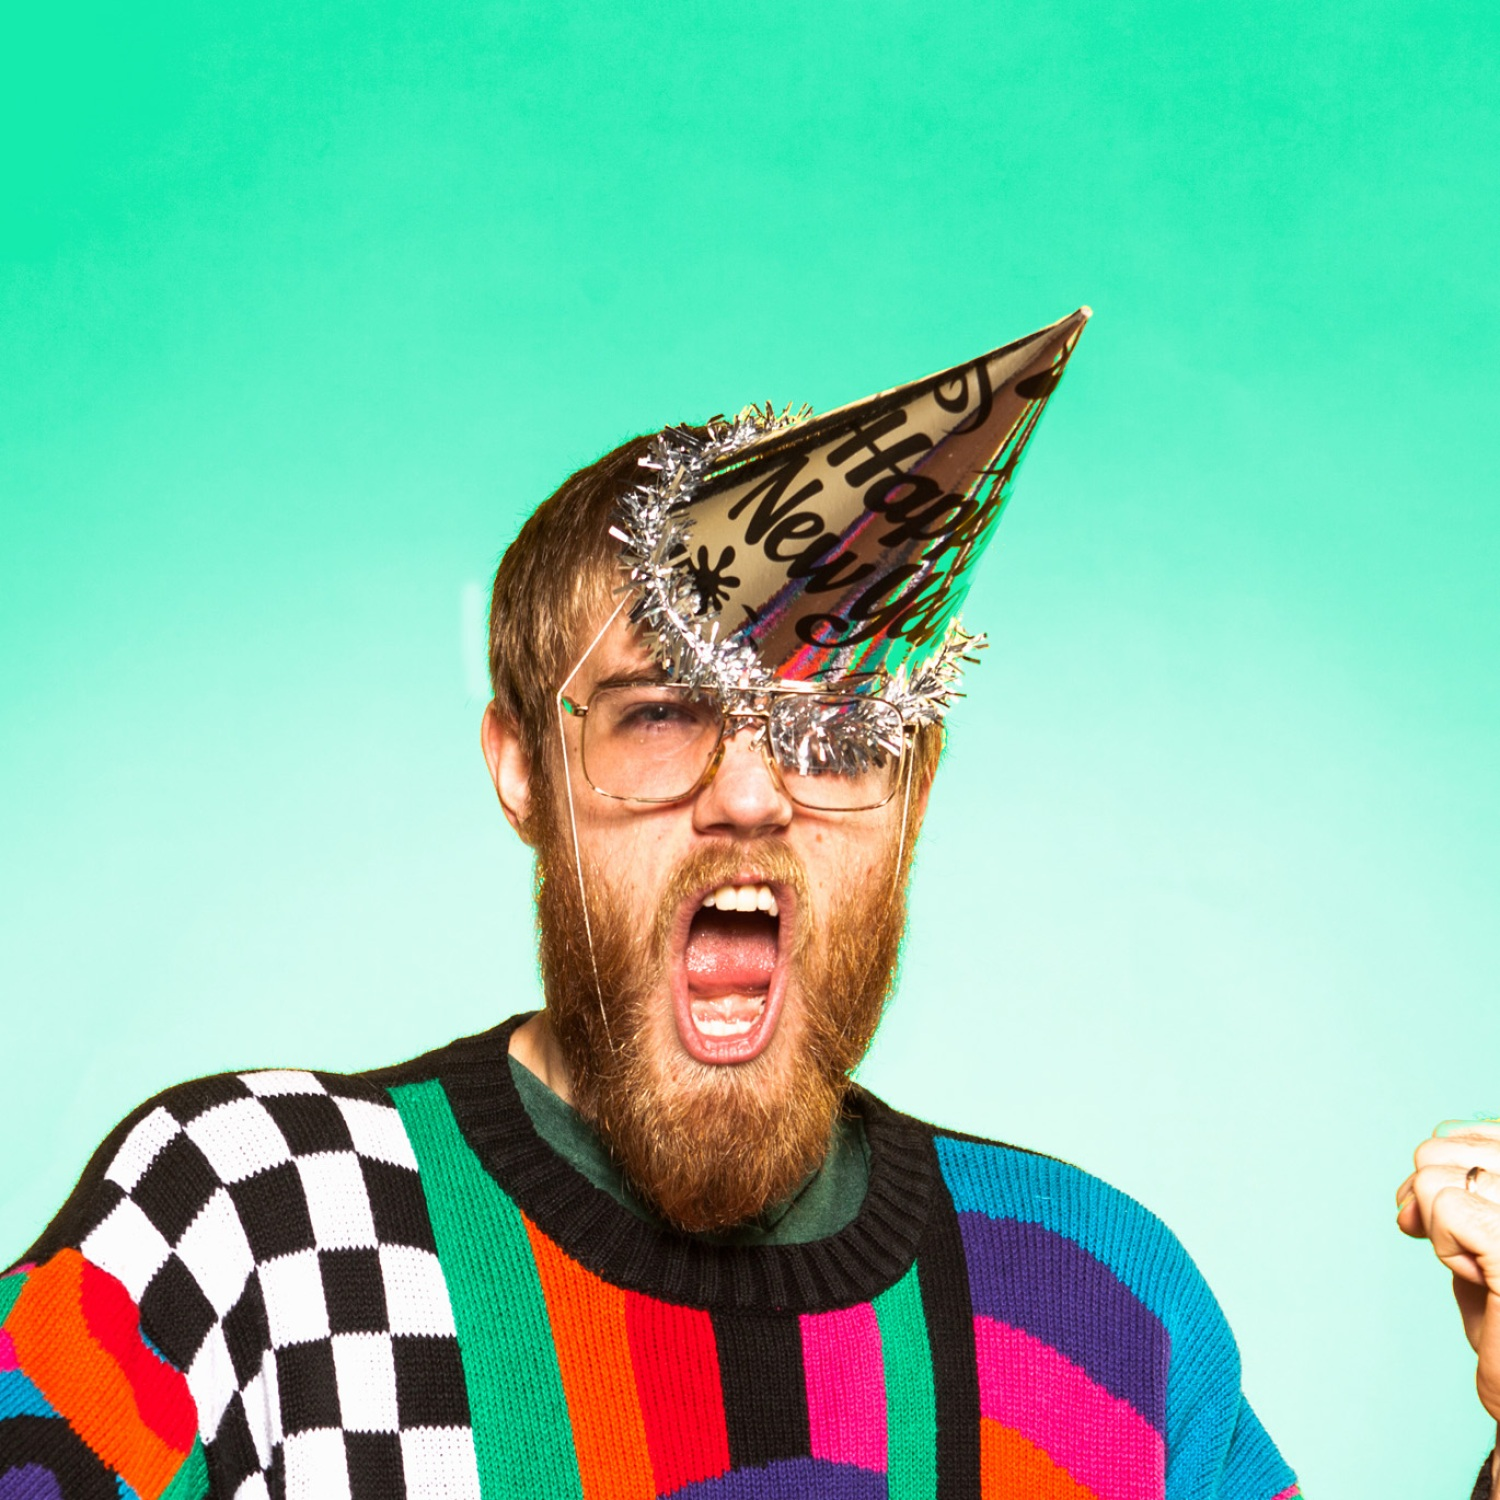 Bearded man in ugly sweater with New Year's party hat